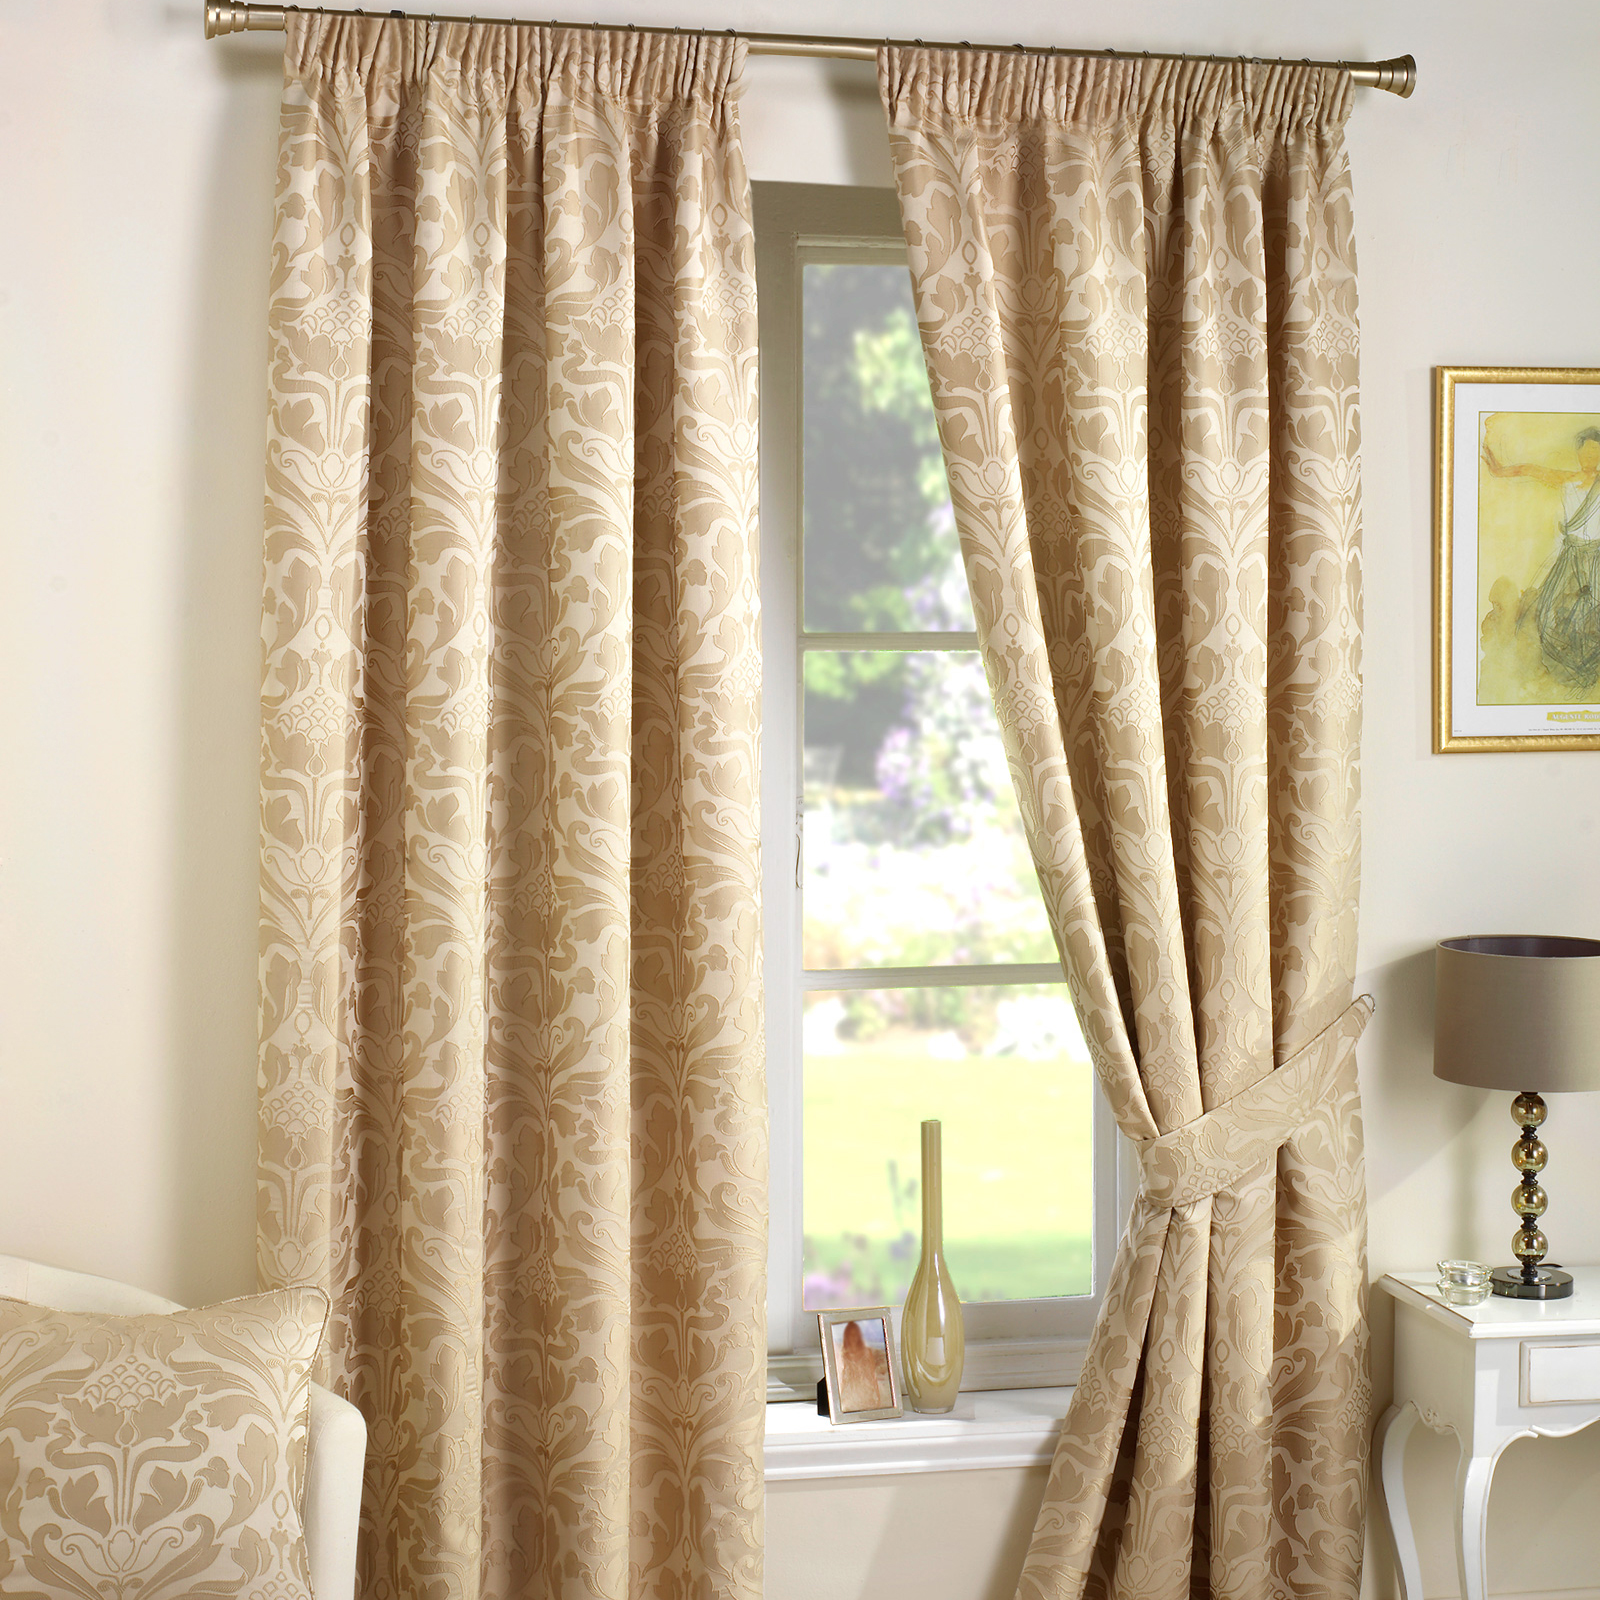 Luxury Jacquard Curtains Heavy Weight Fully Lined Pencil